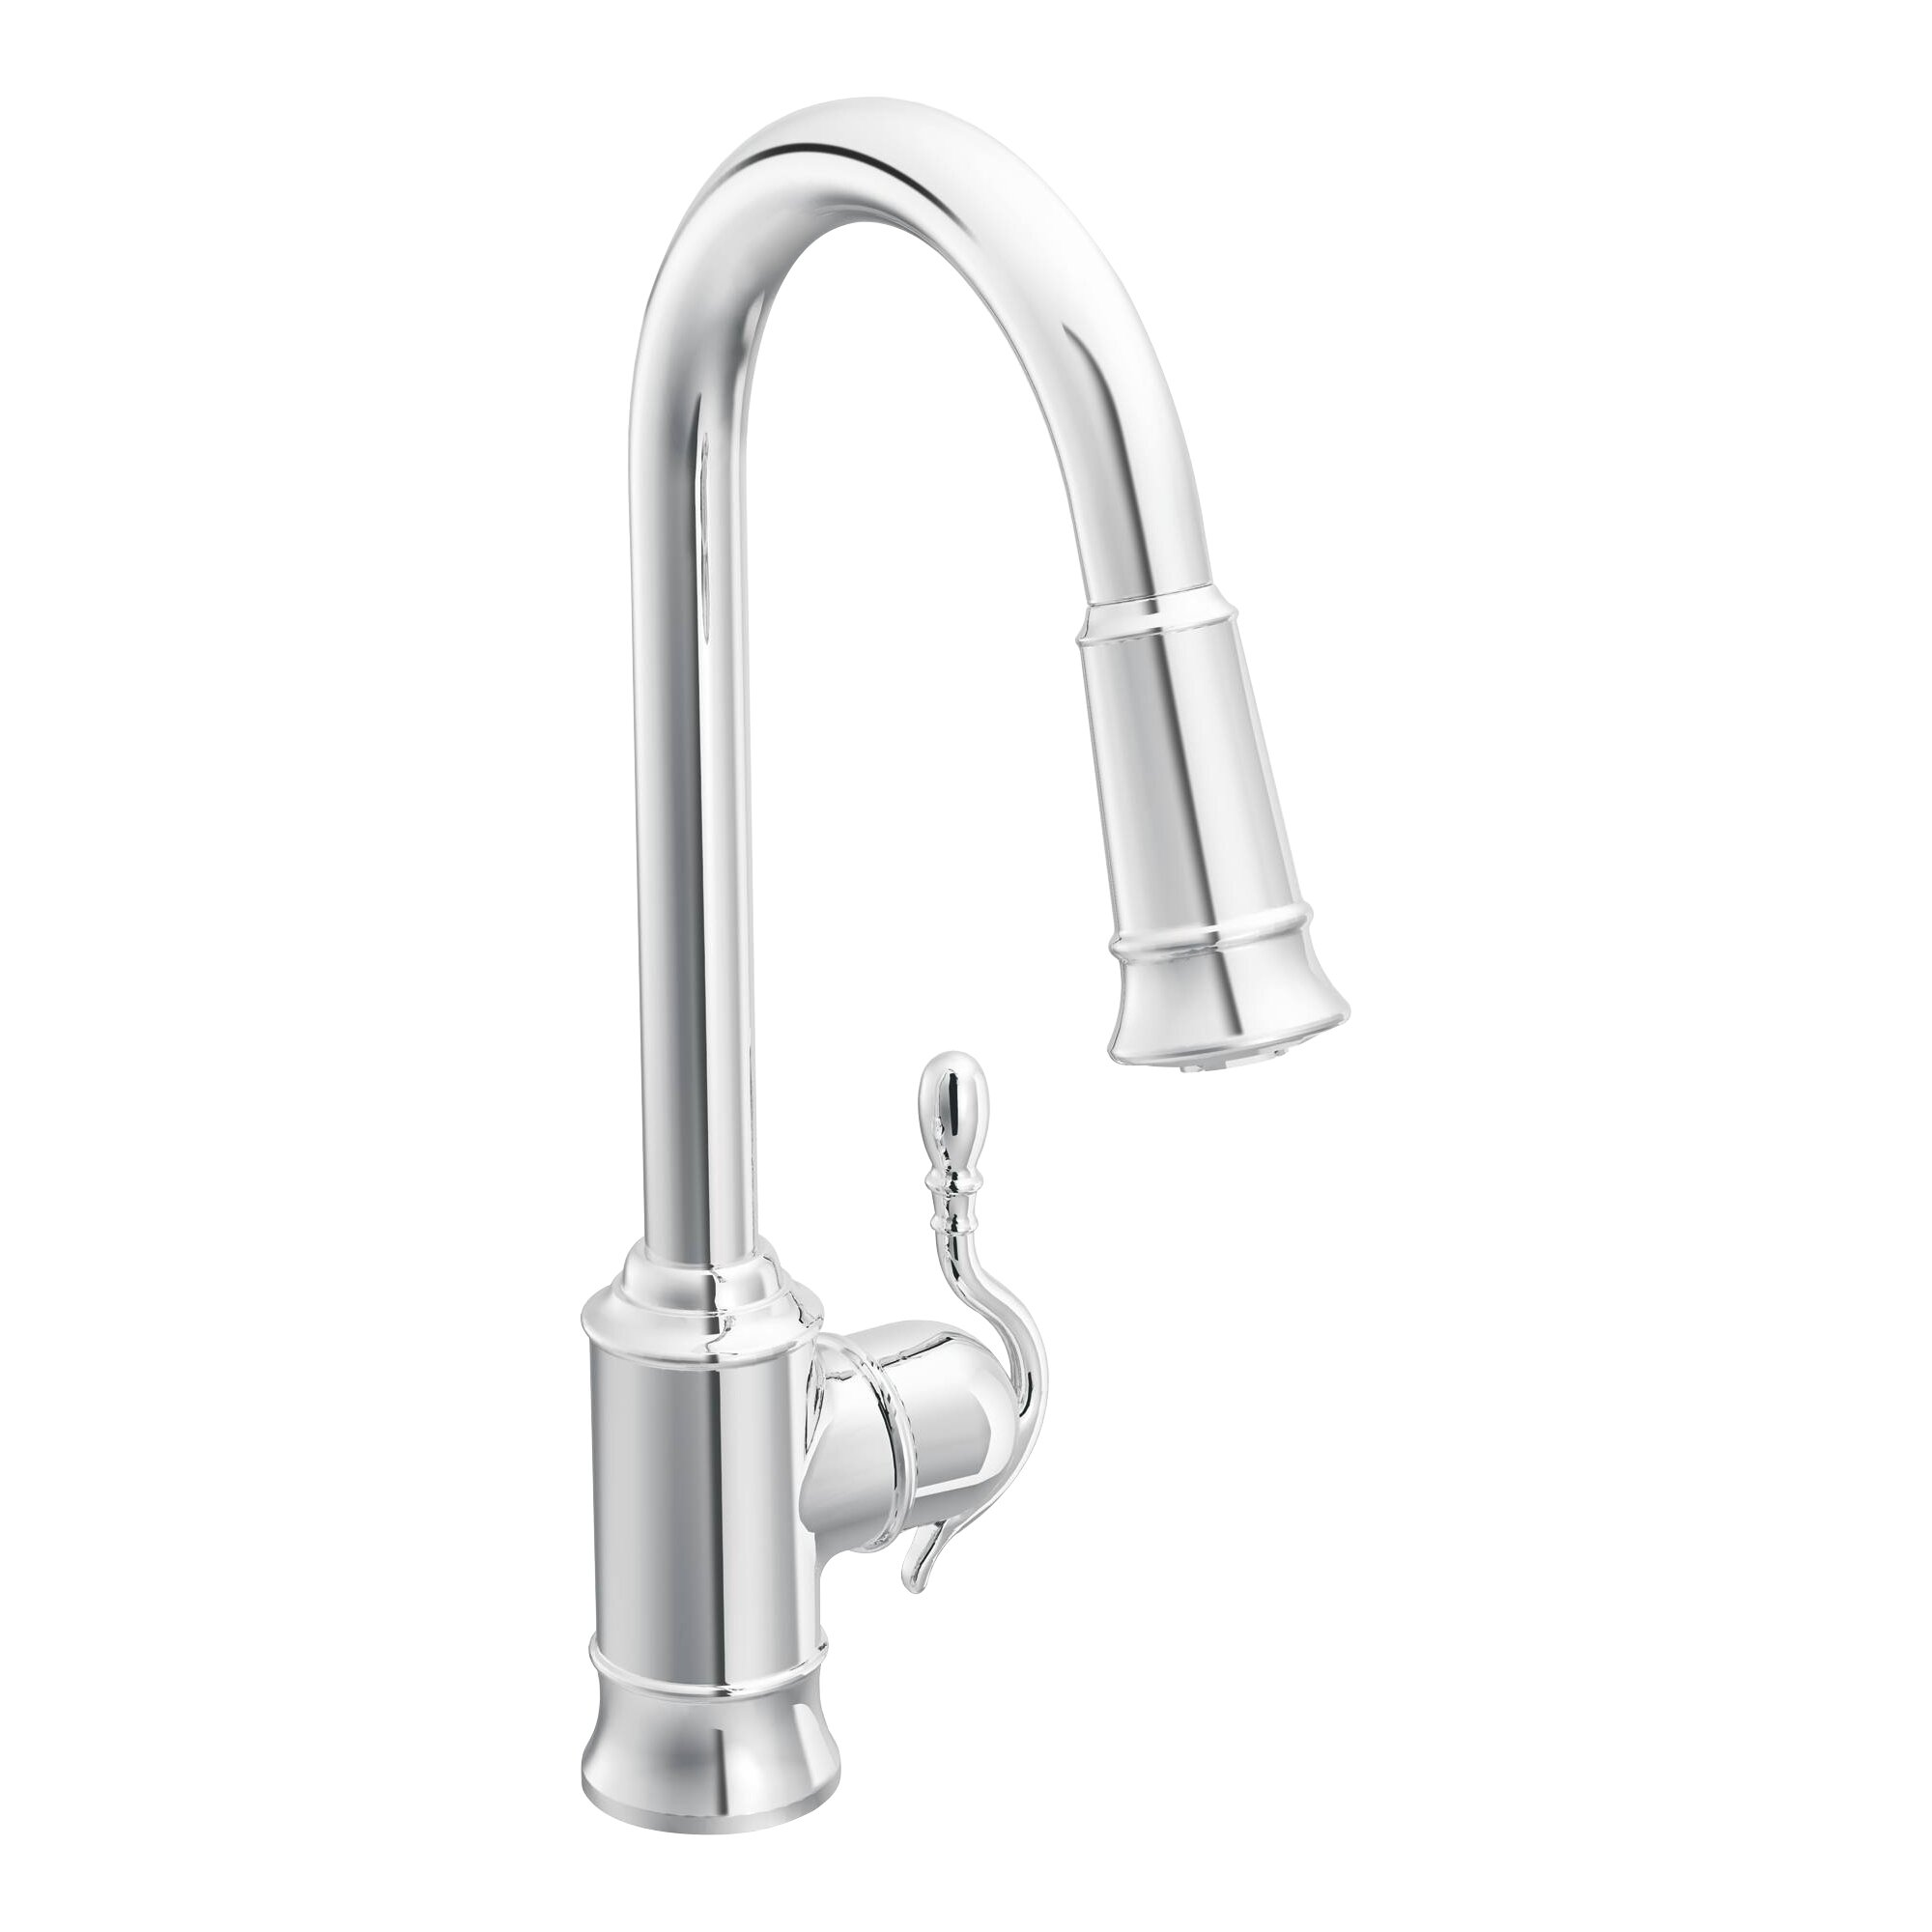 Moen Woodmere Single Handle Single Hole Kitchen Faucet